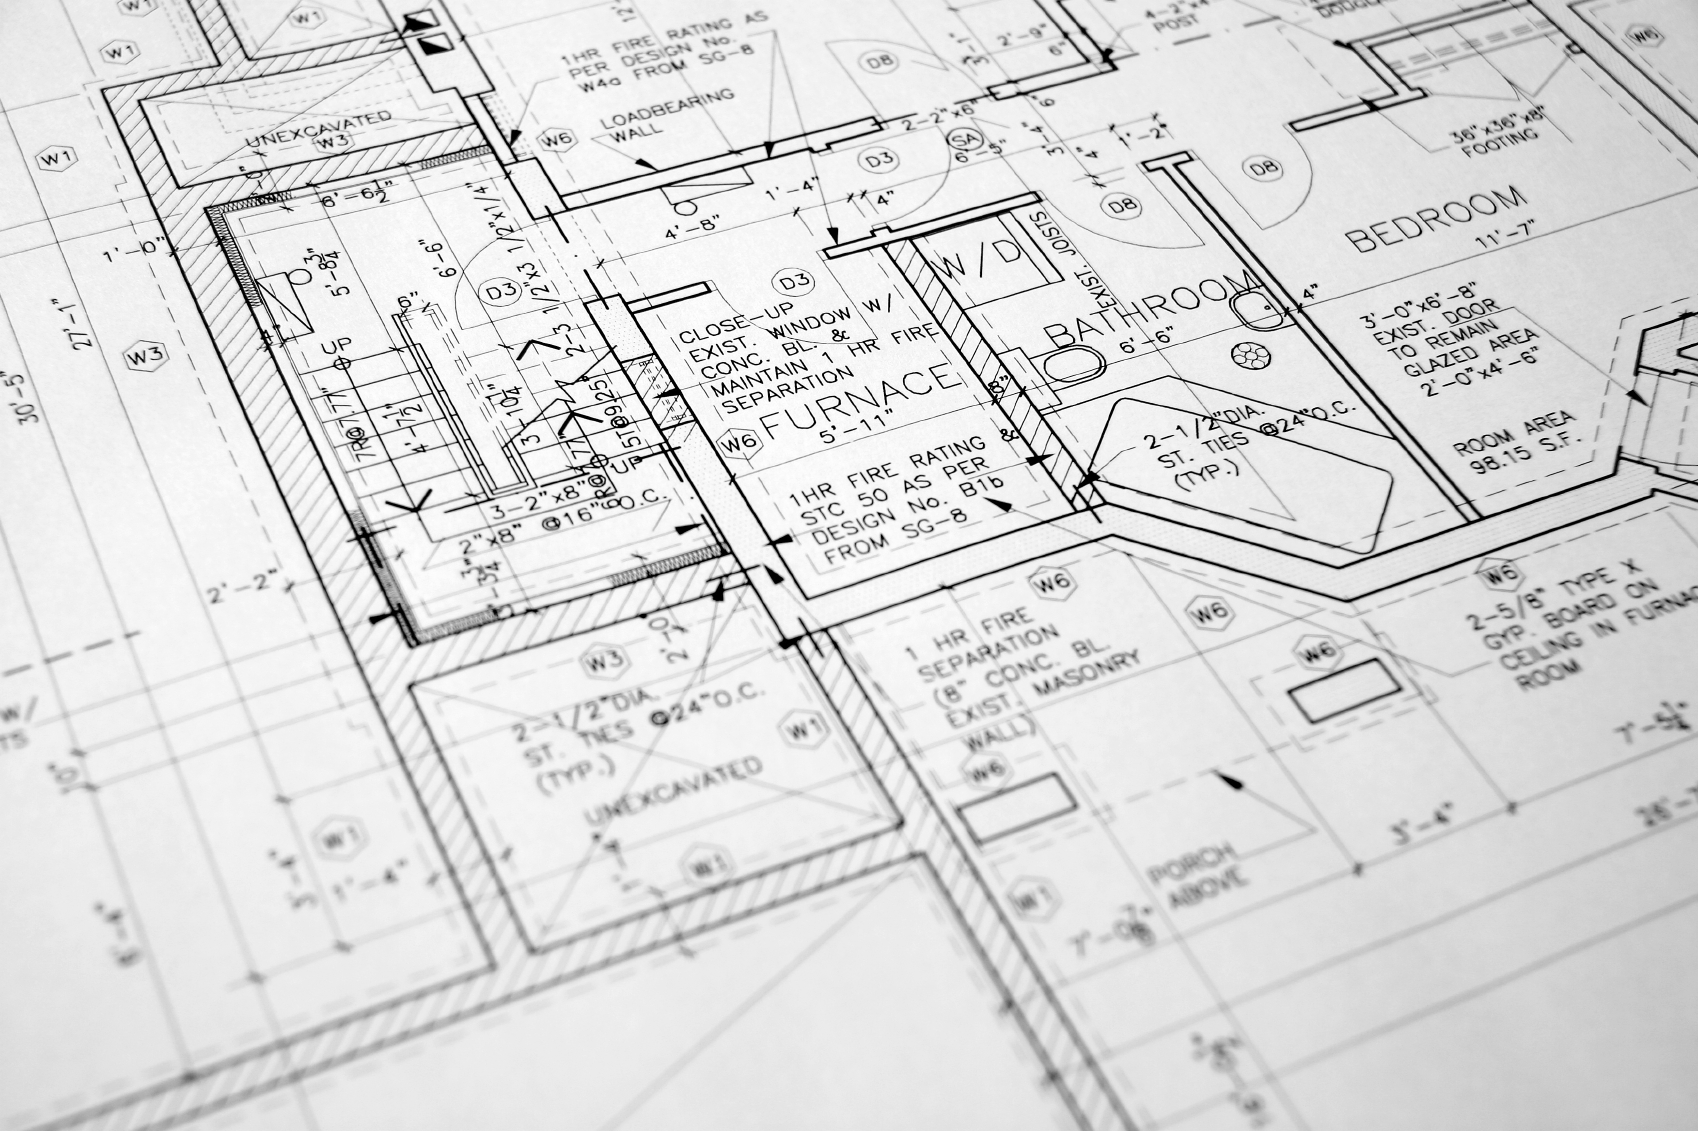 Architectural engineering blueprints architectural engineering architectural engineering blueprints blueprints architectural engineering malvernweather Image collections